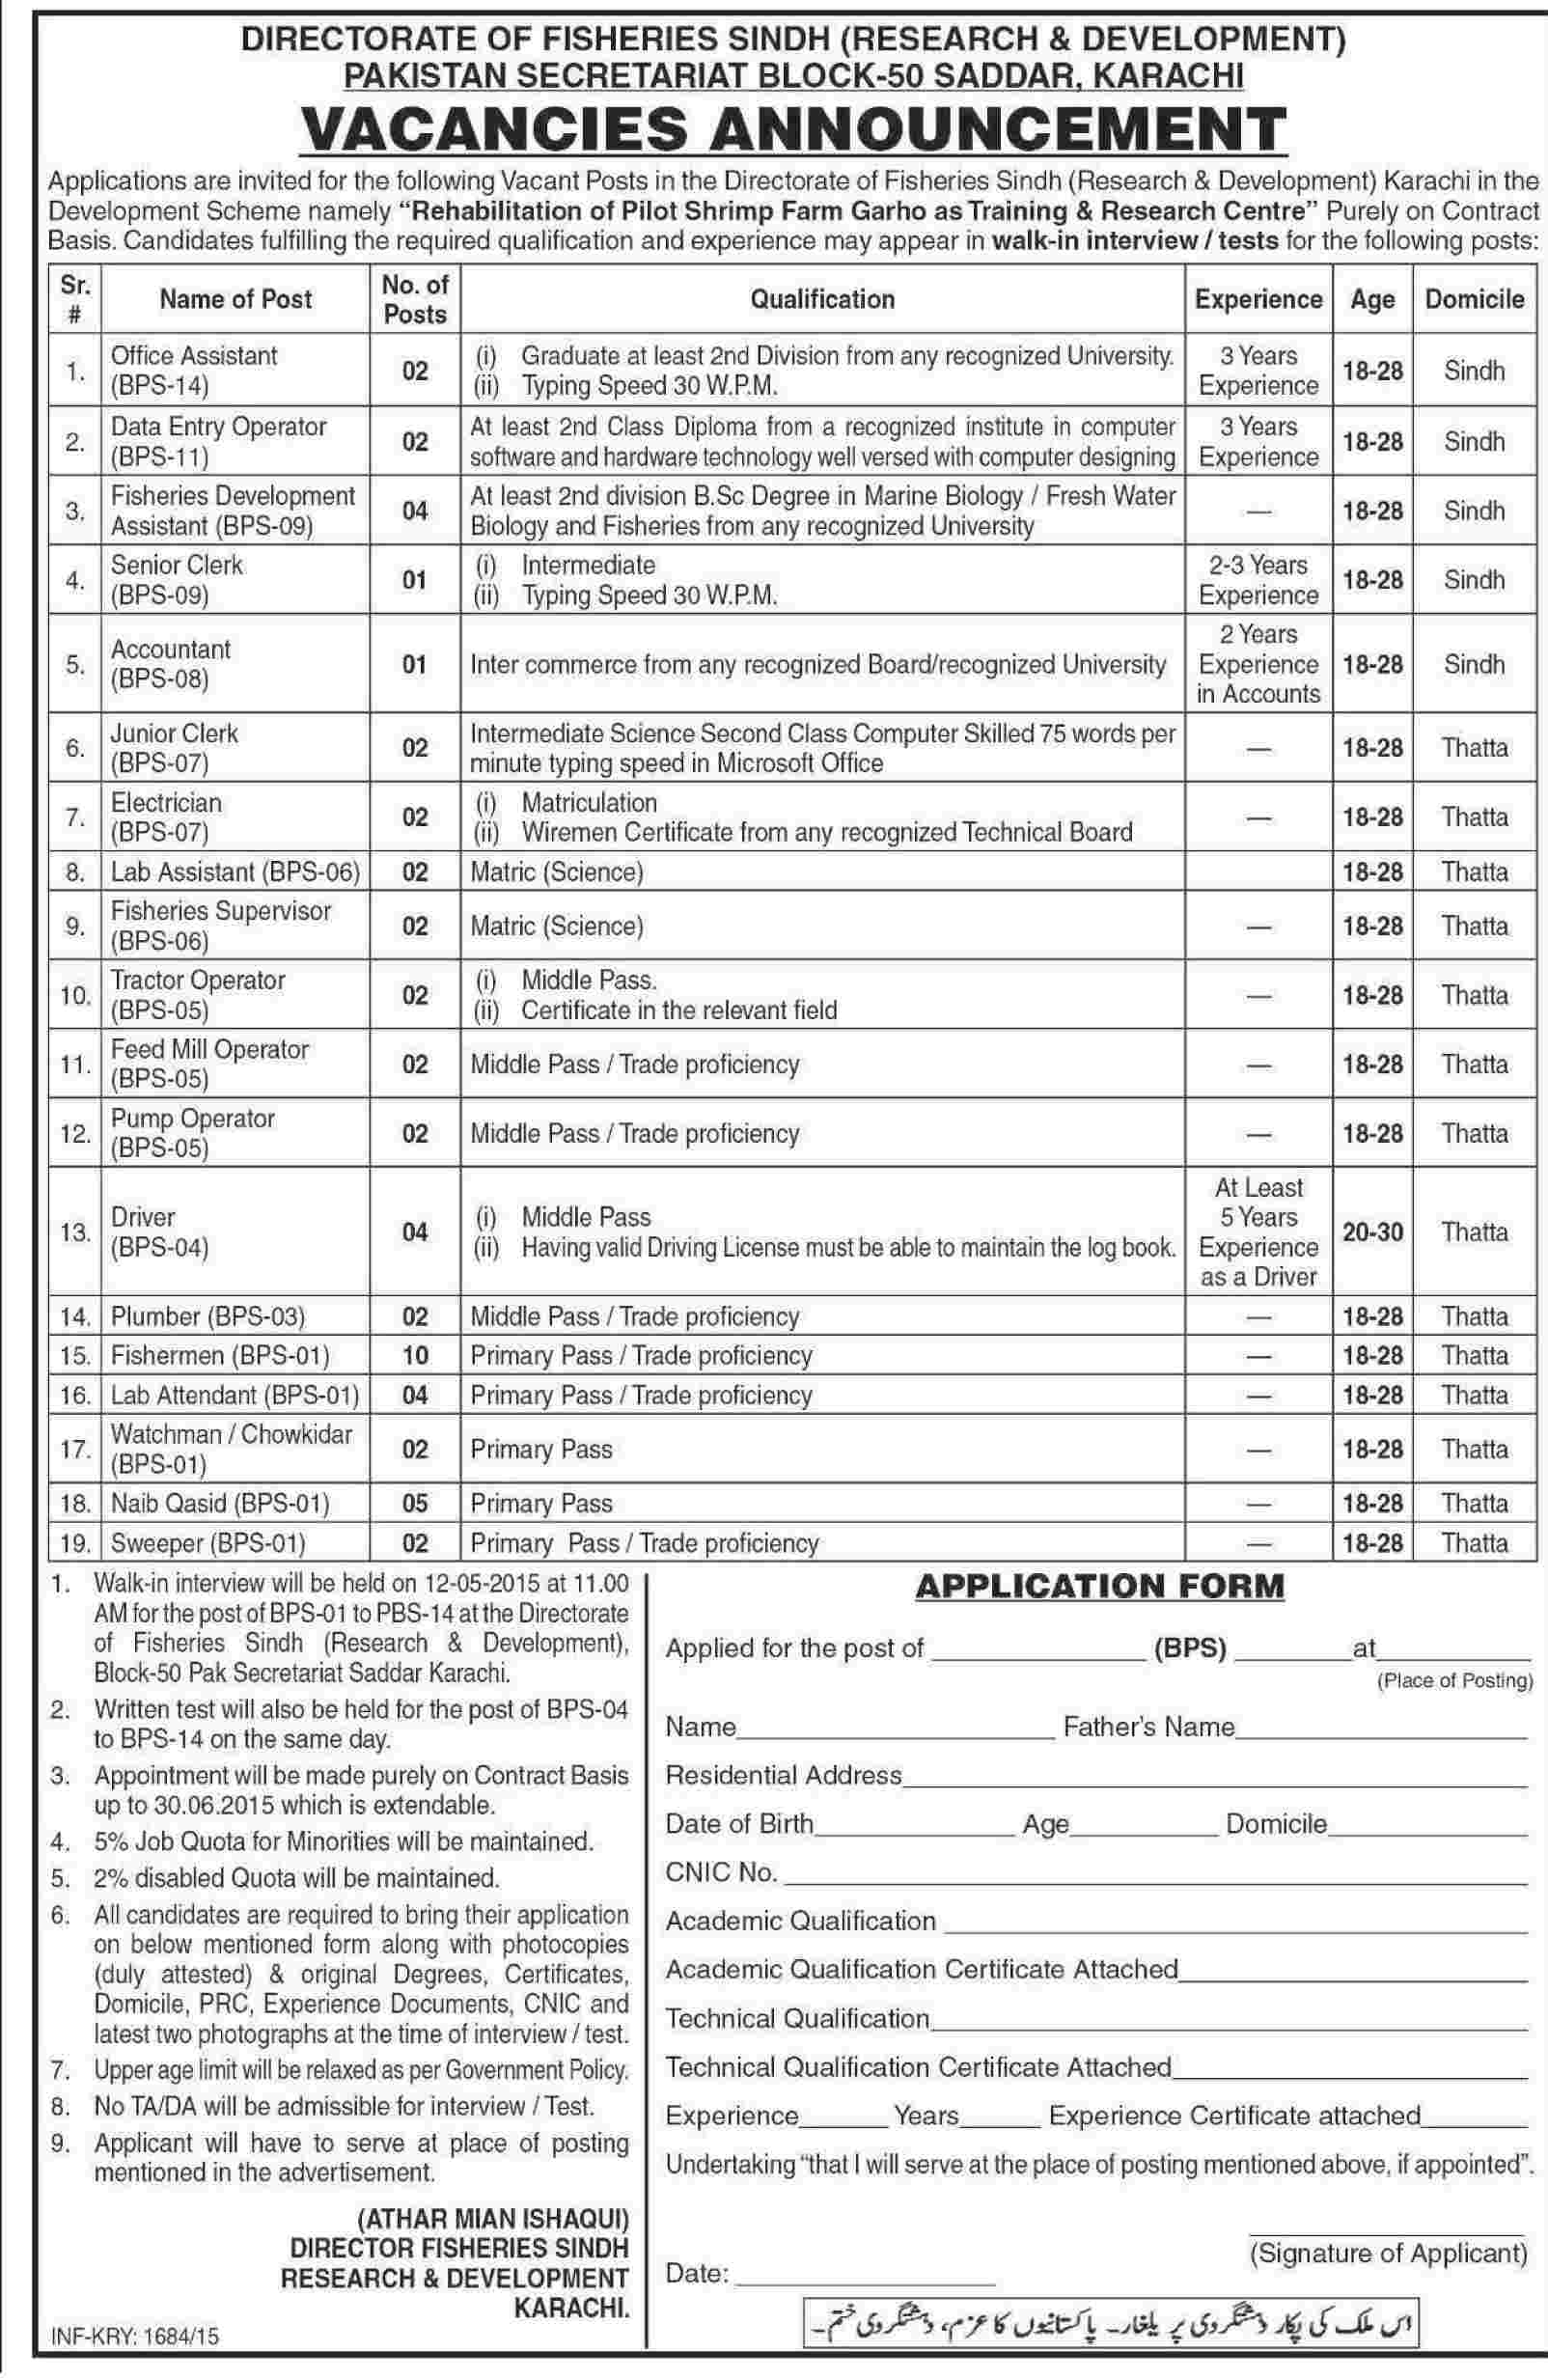 Directorate Of Fisheries Sindh Karachi Jobs 2015 Application Form ...